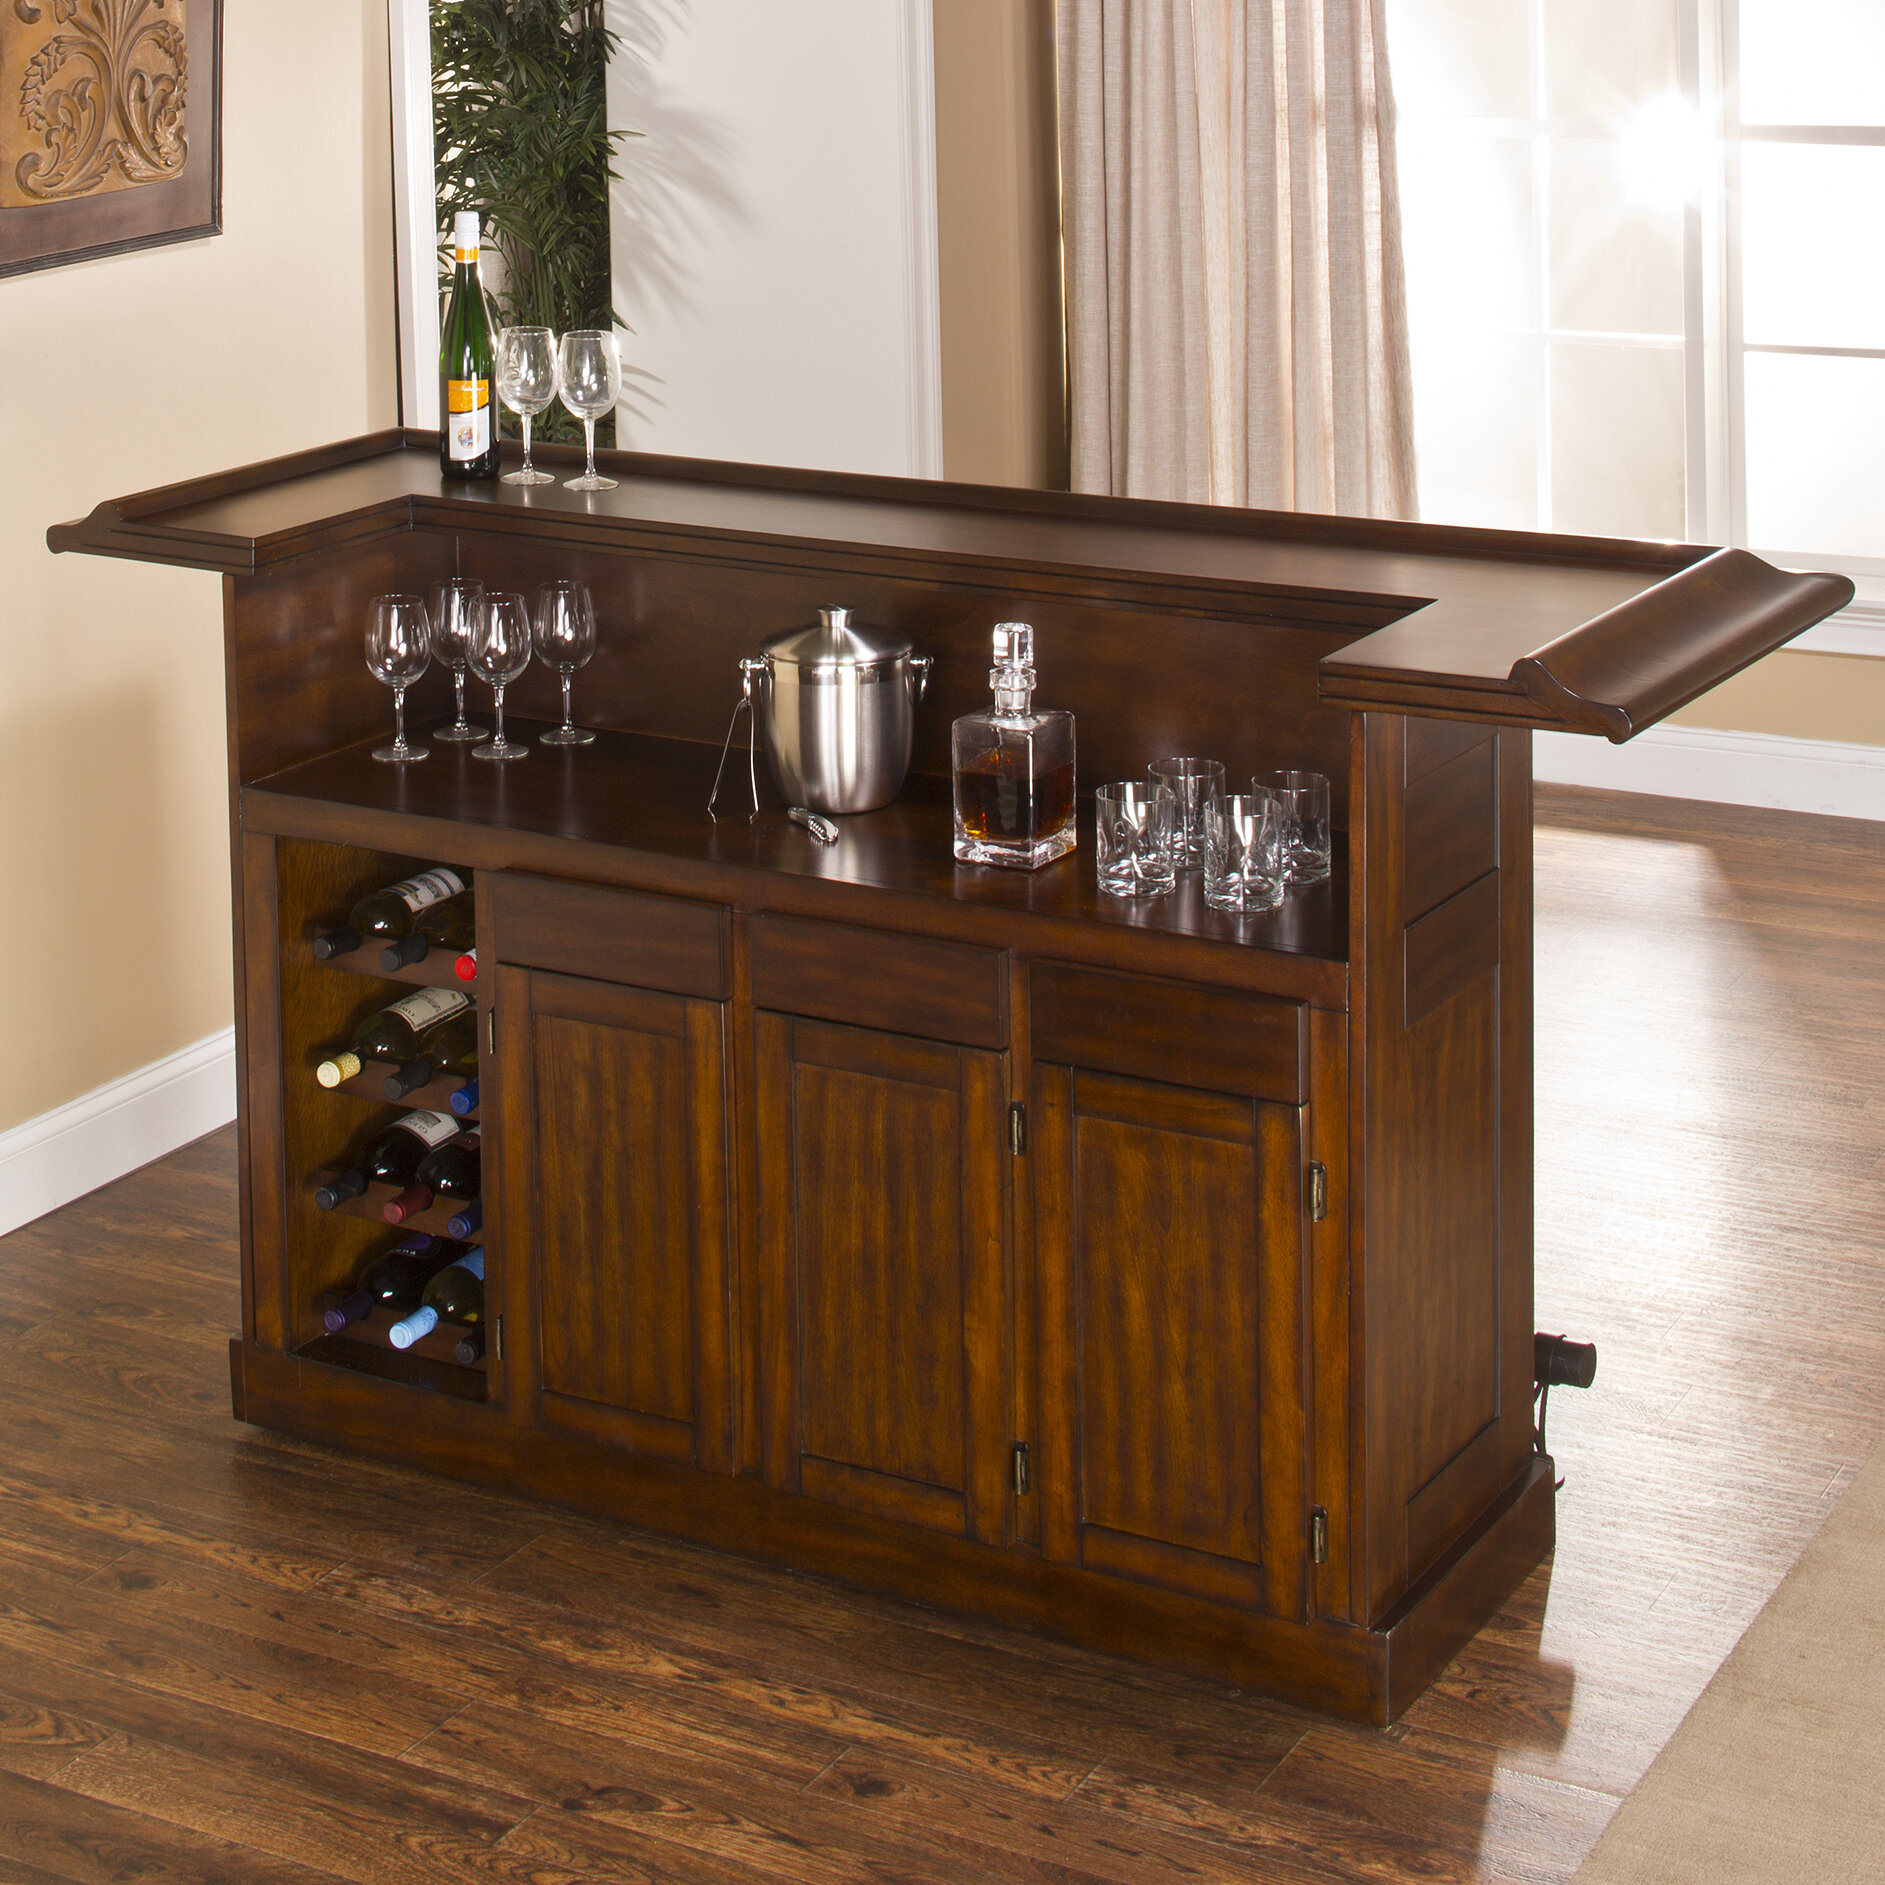 Bar Furniture Home: Hillsdale Furniture Classic Home Bar